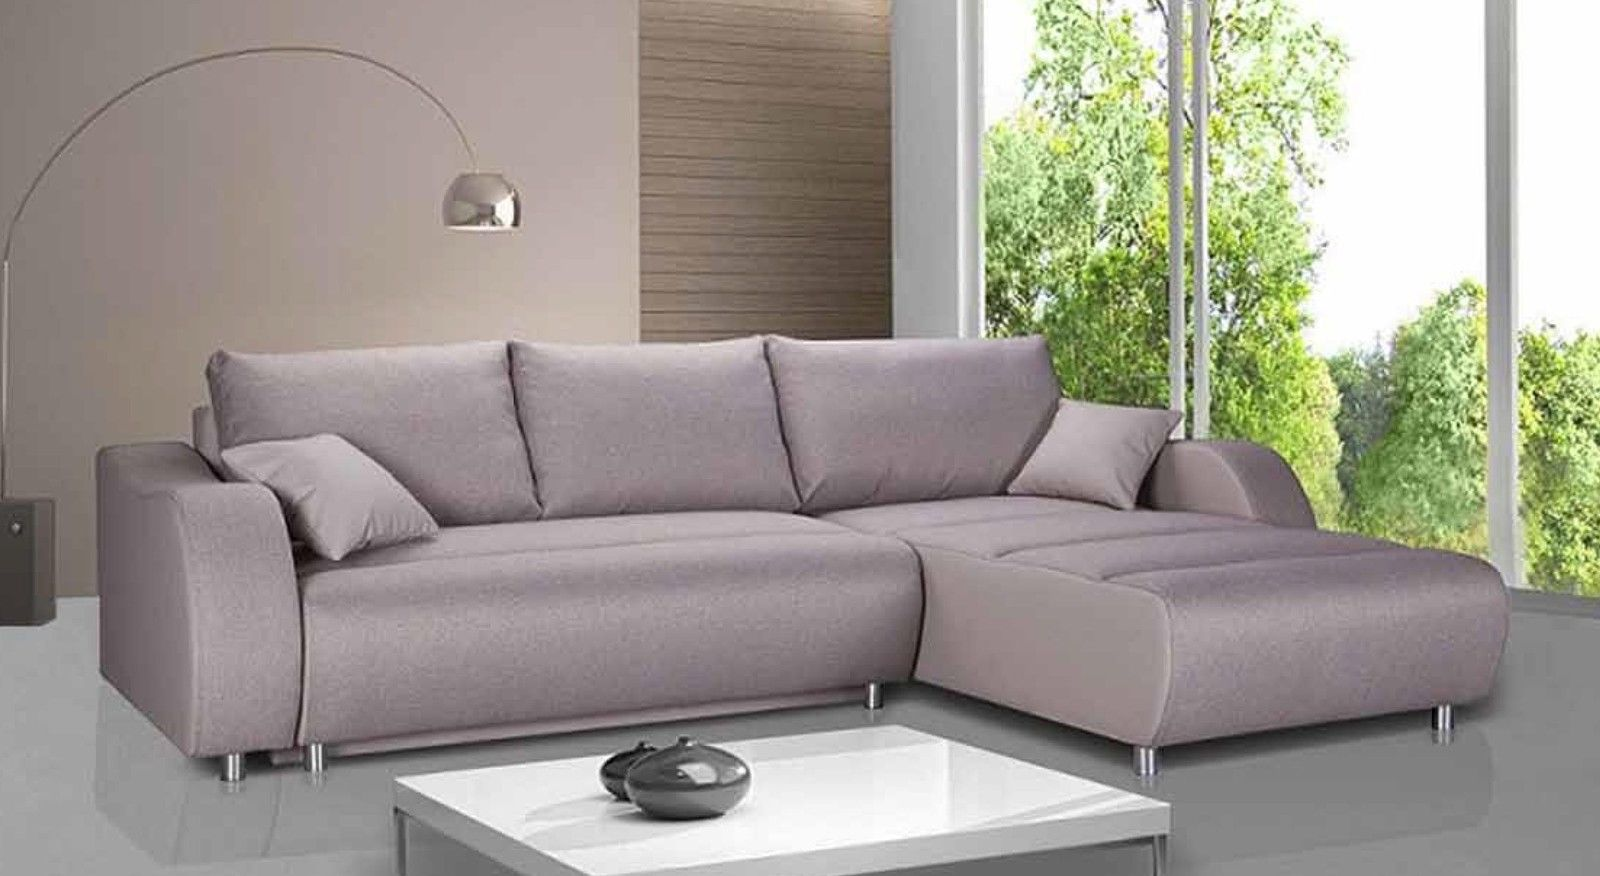 affordable sofas ... corner sofa bed fabric grey surf sofadiscount also corner sectional  couches KENRLEY